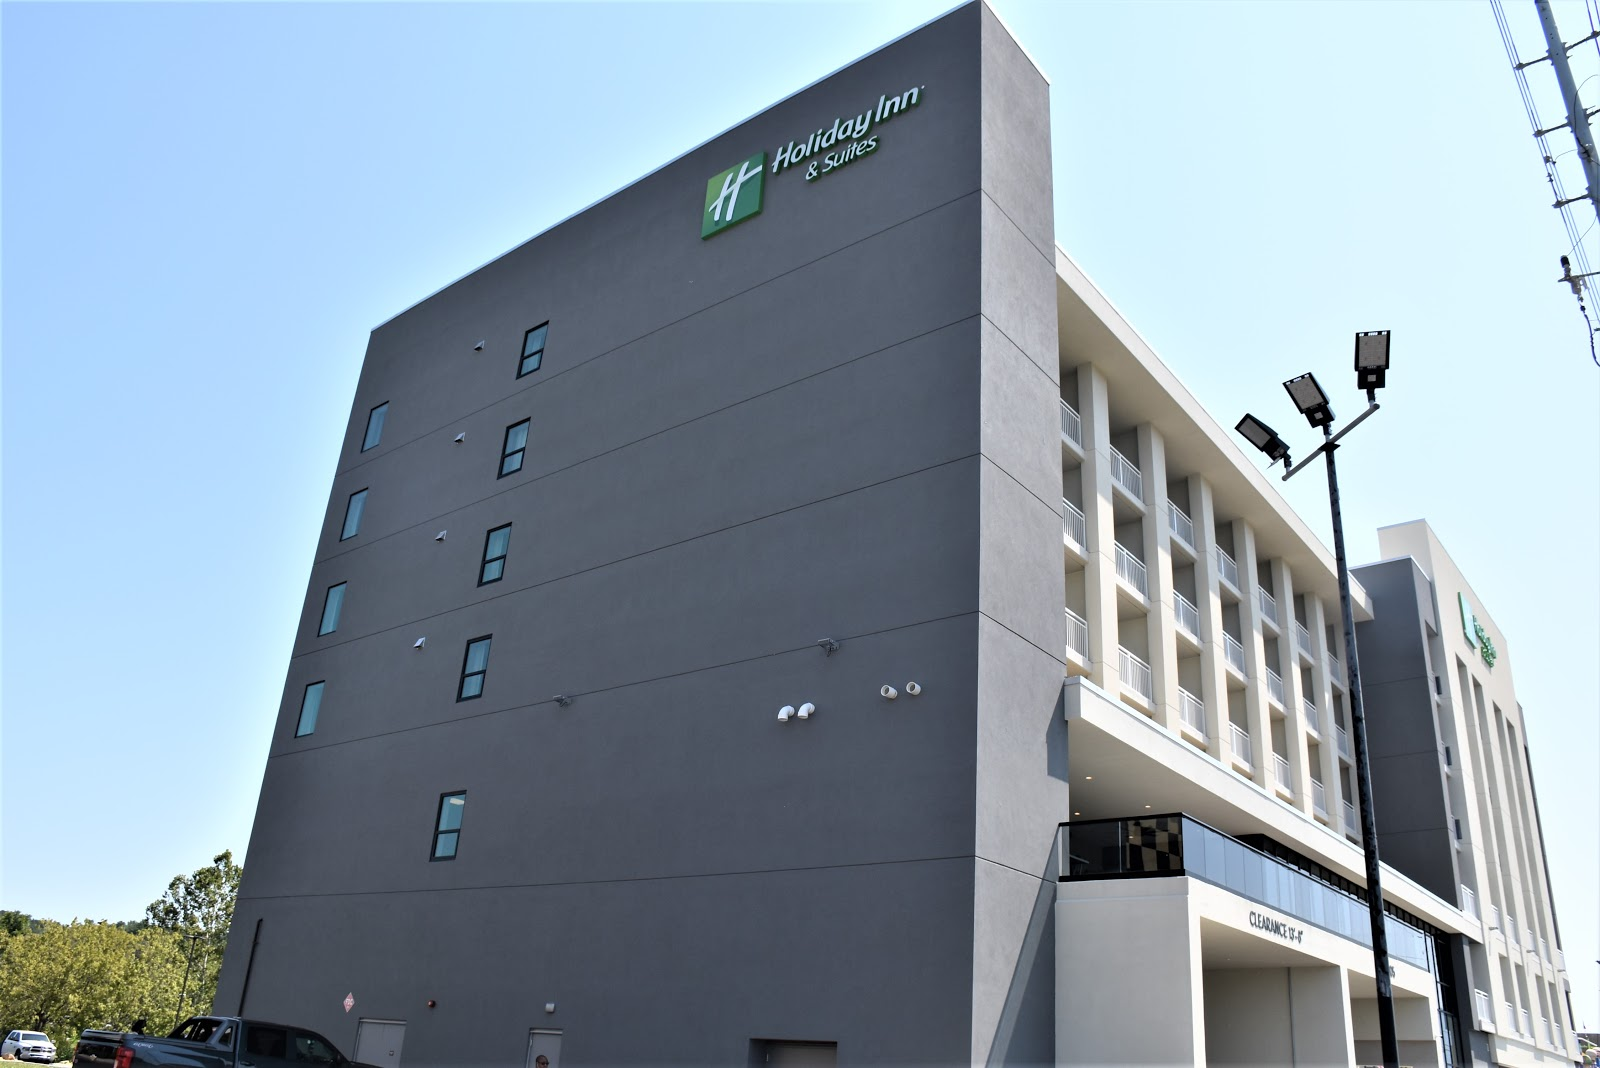 Holiday Inn & Suites in Pigeon Forge, TN